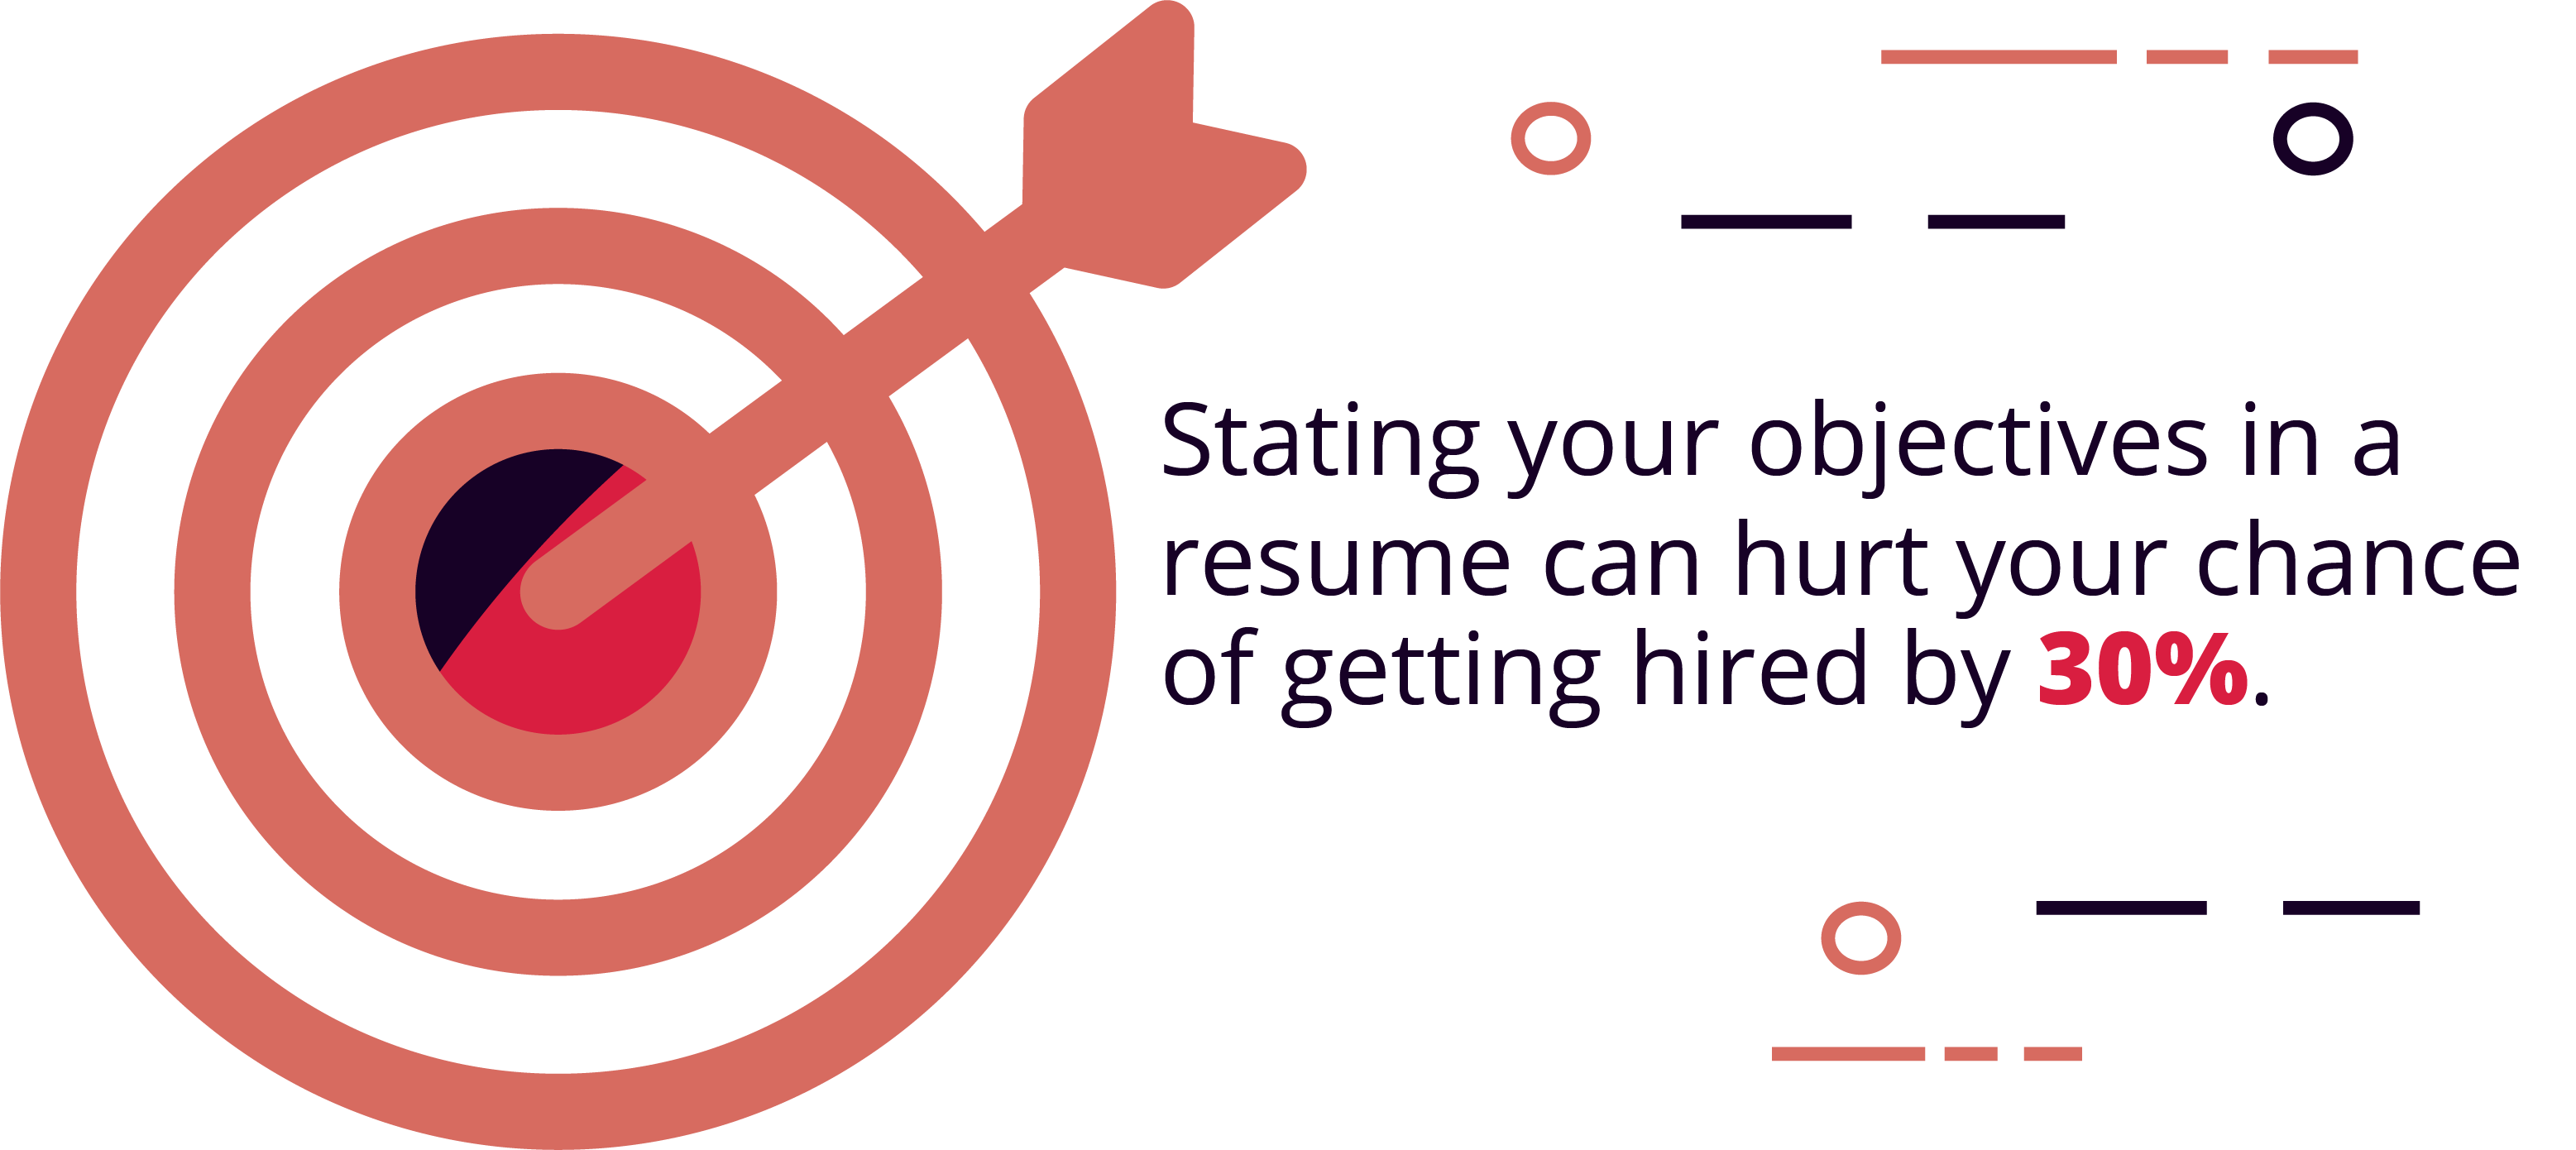 Including Resume Objectives Can Hurt Your Chances by 20-67%